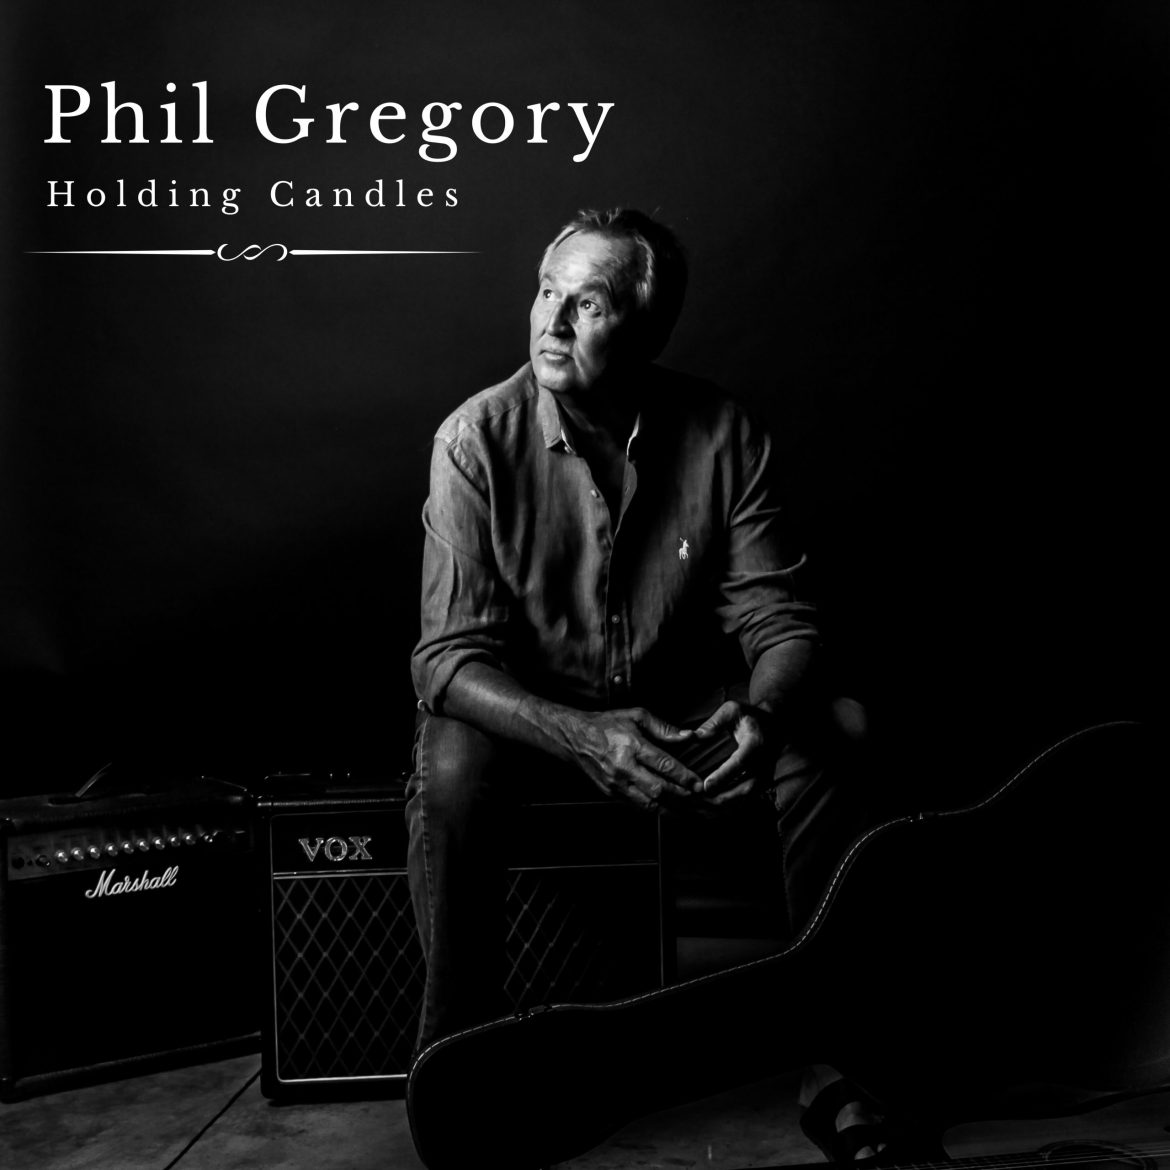 Country Singer Phil Gregory Returns With Hook Laden New Single Holding Candles